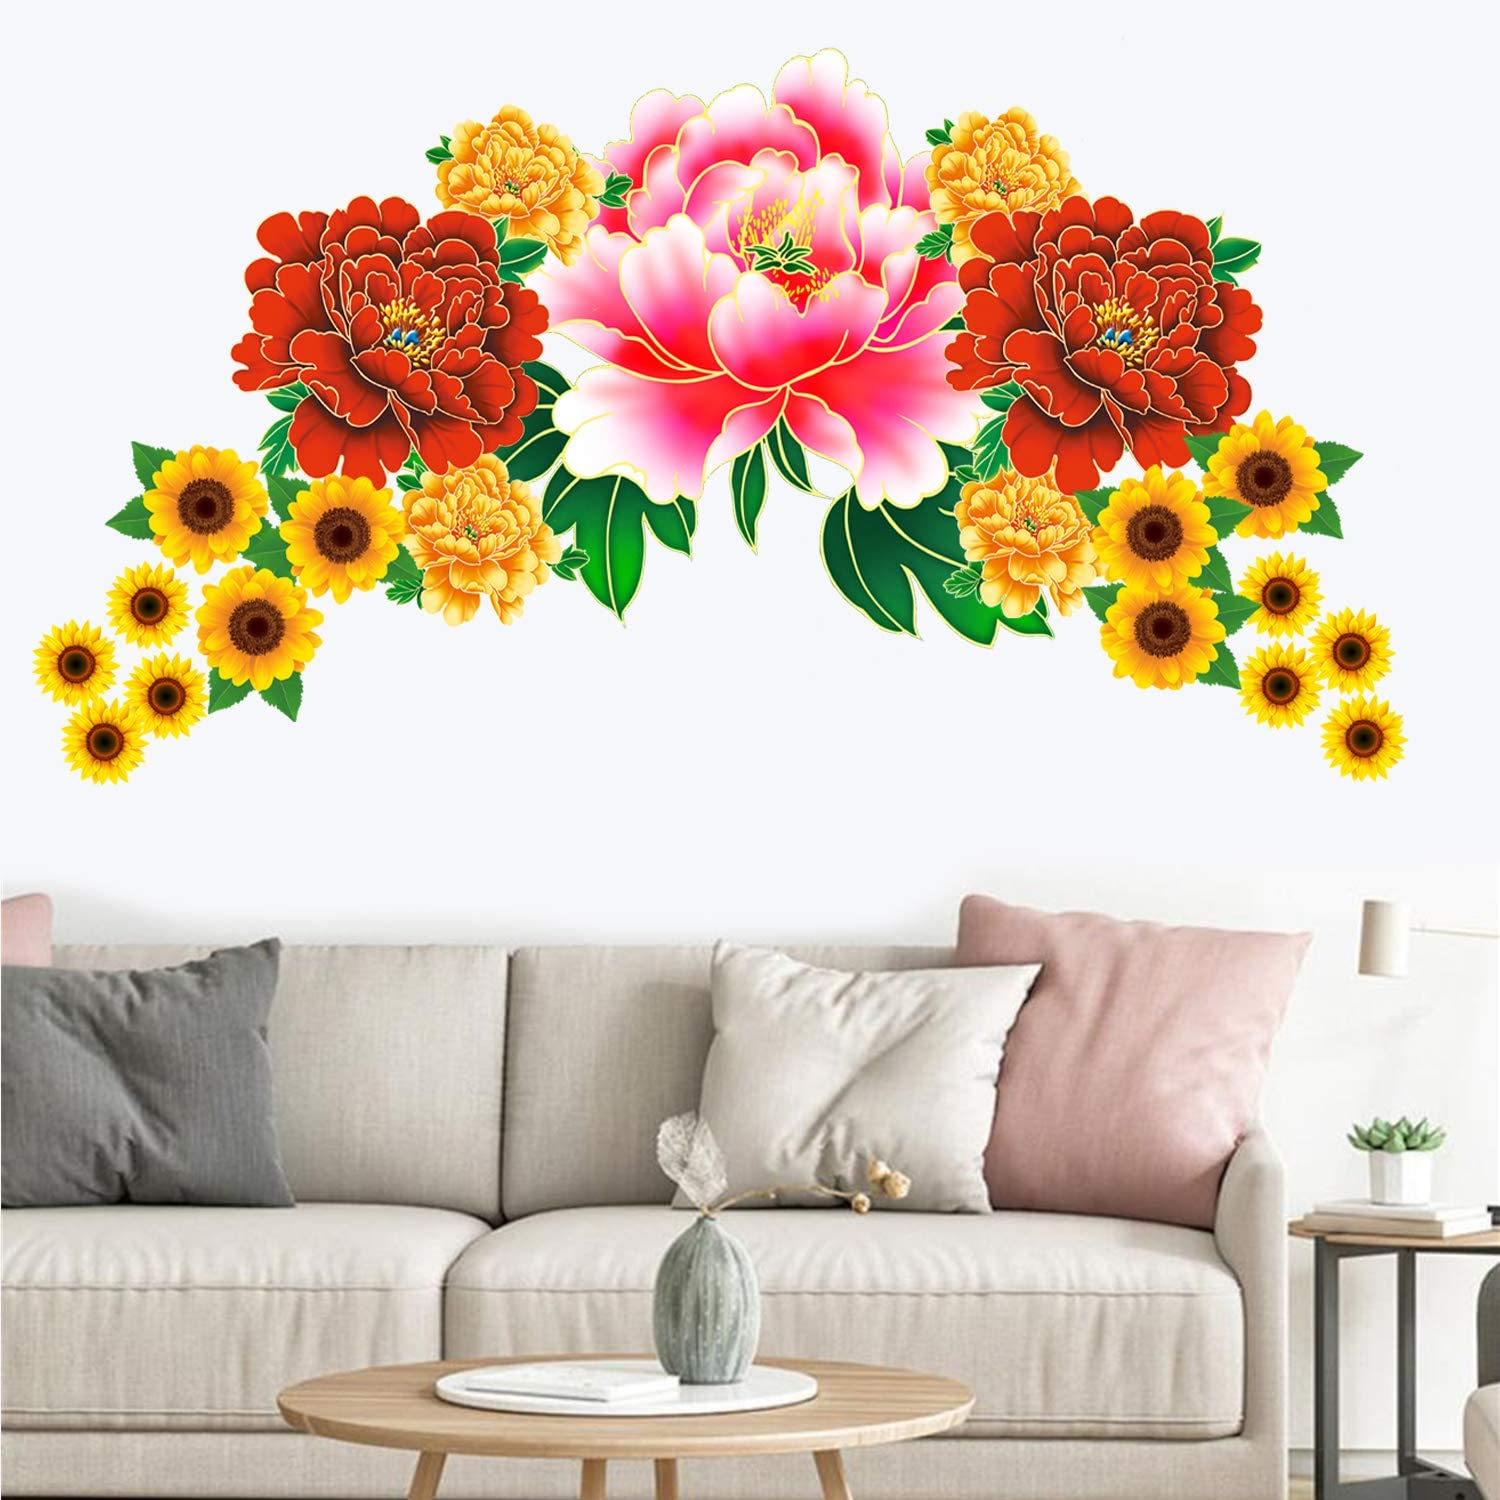 pop art bedroom decor.htm amazon com 21pcs diy peony flower   sunflower wall sticker peel  peony flower   sunflower wall sticker